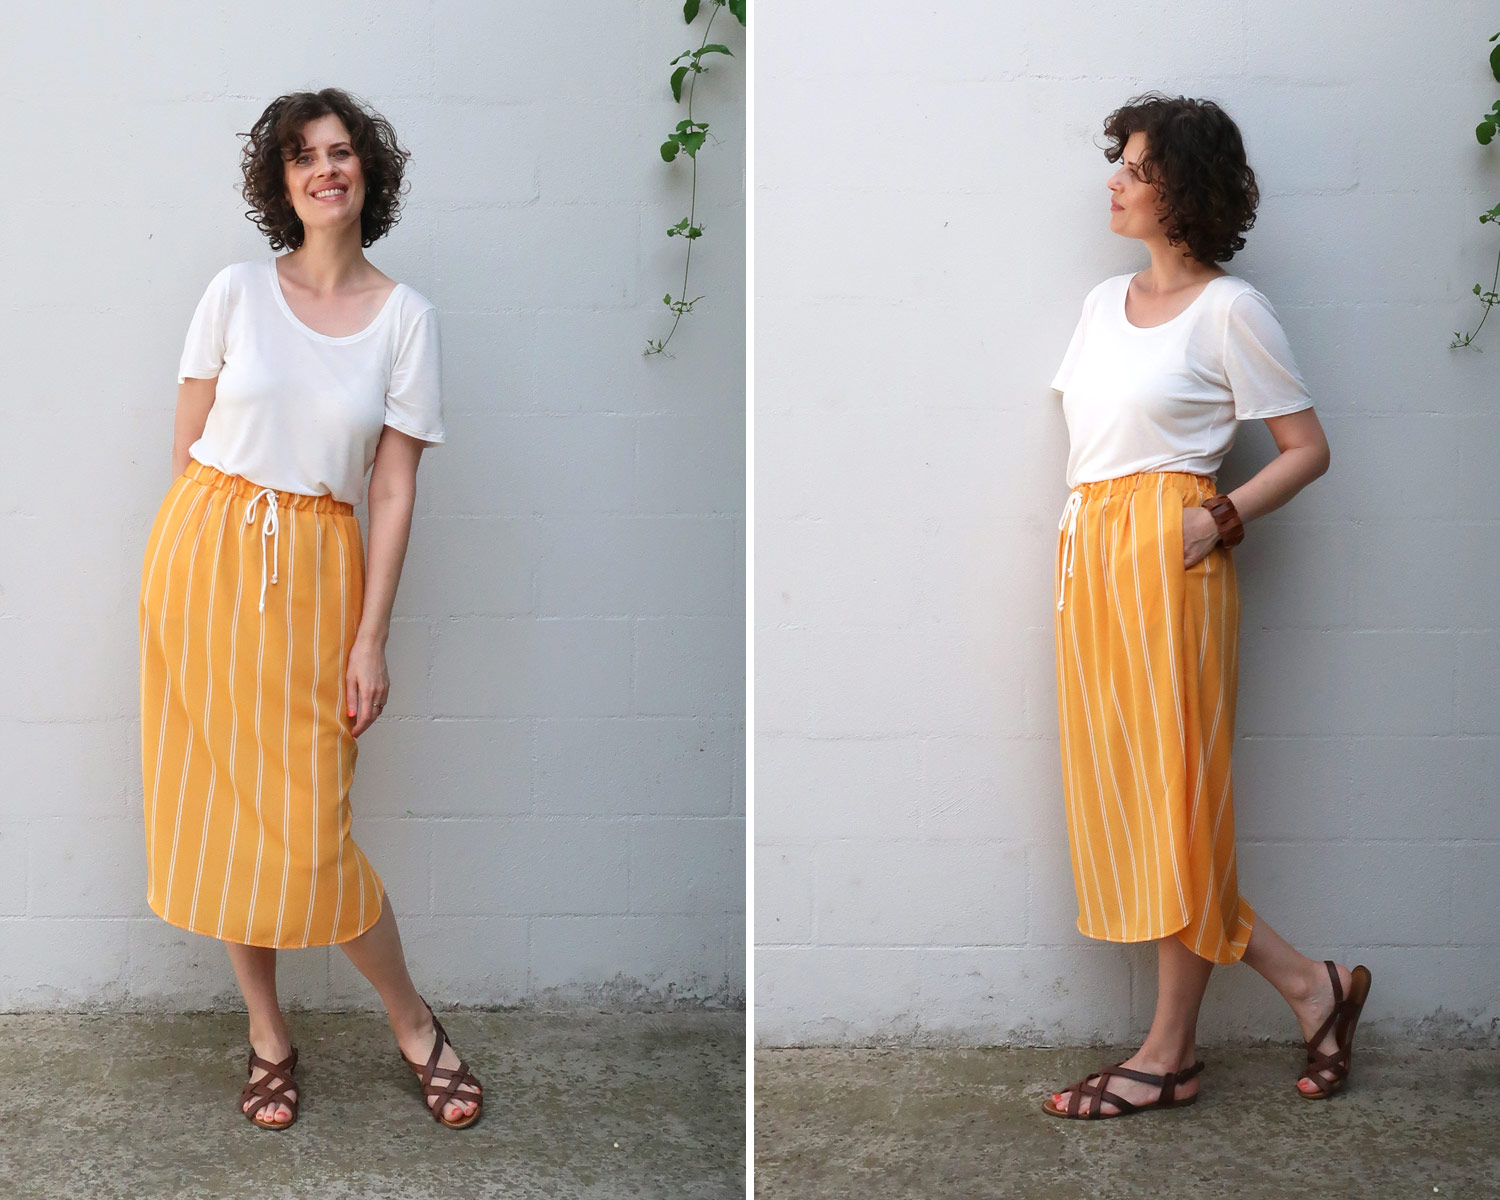 How to style the Lela Skirt with a T-shirt